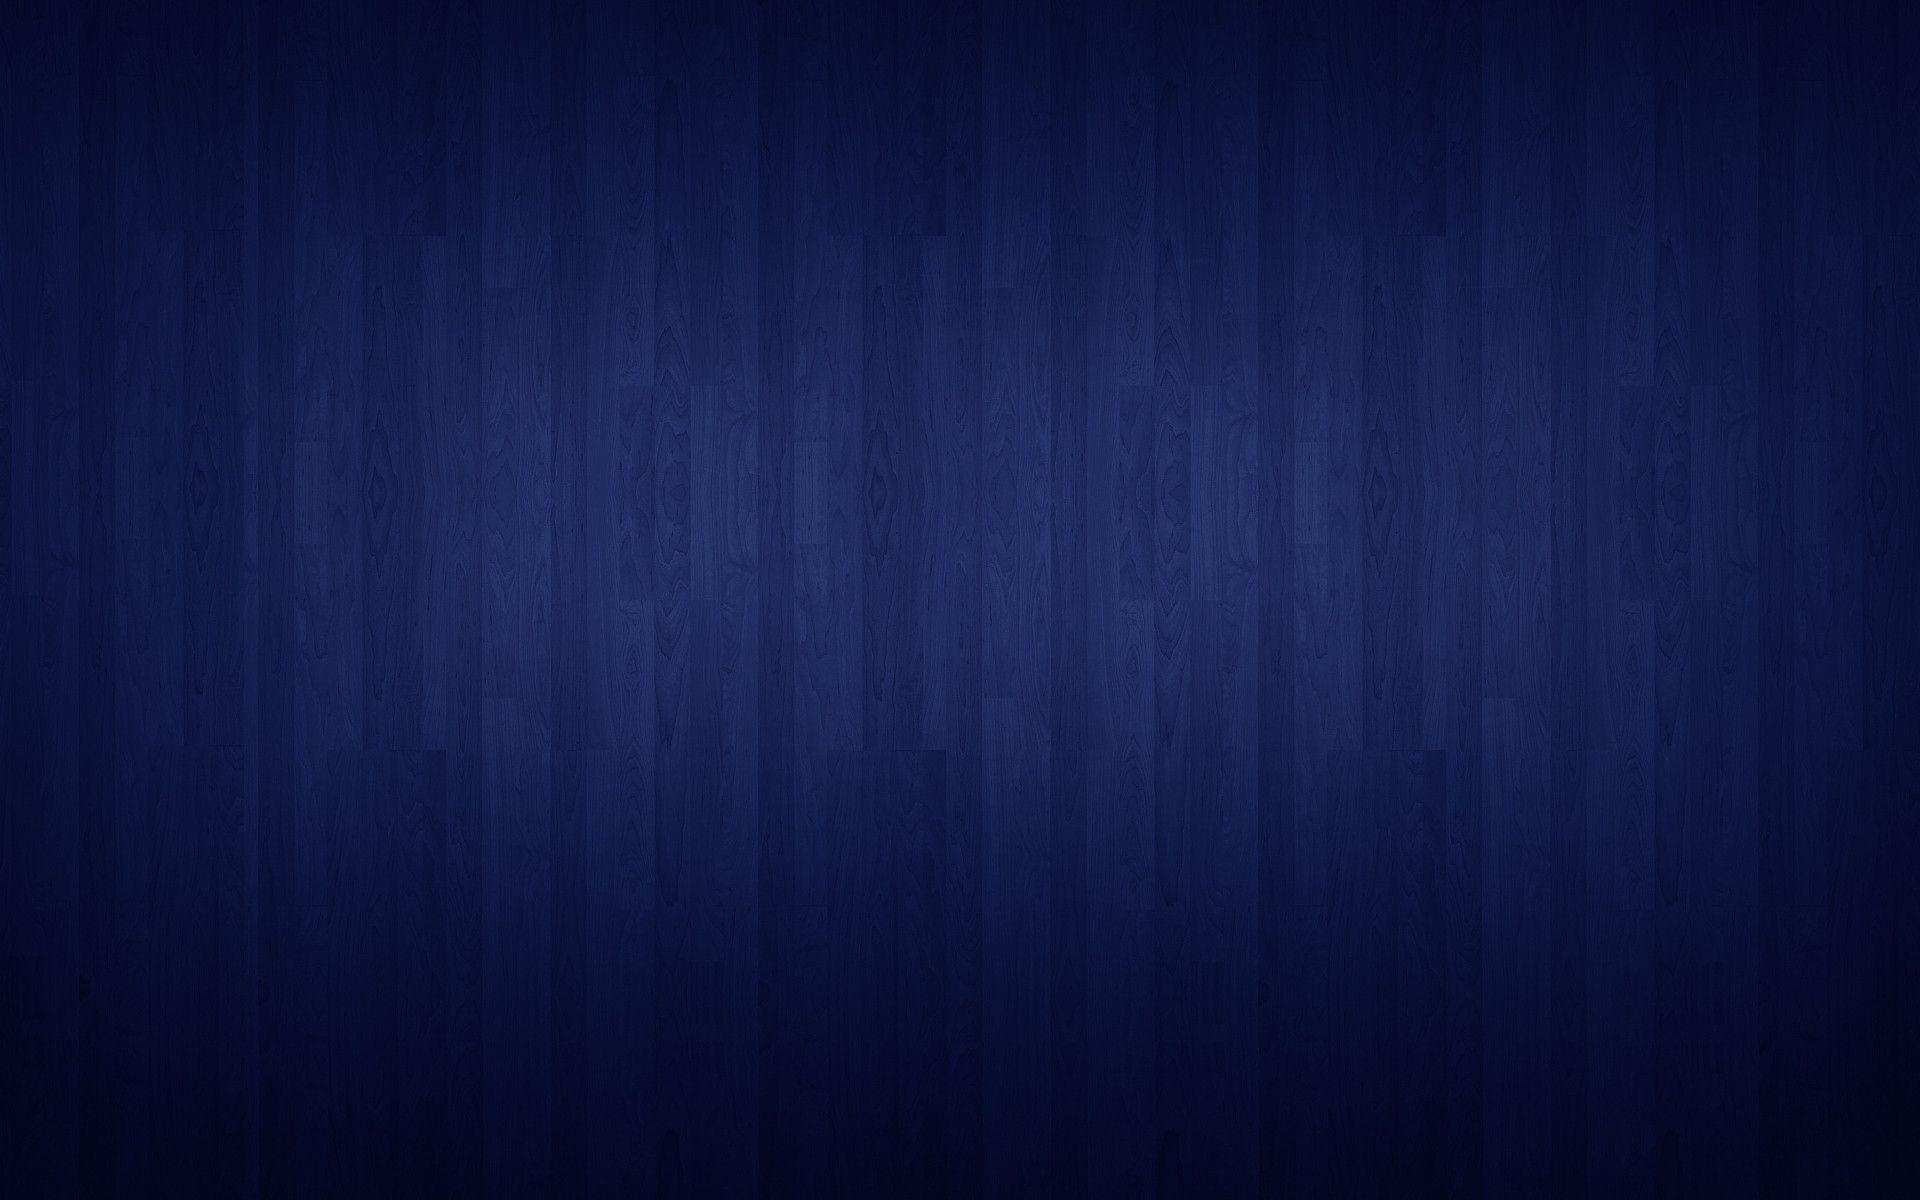 Plain Dark Blue Wallpapers And Background